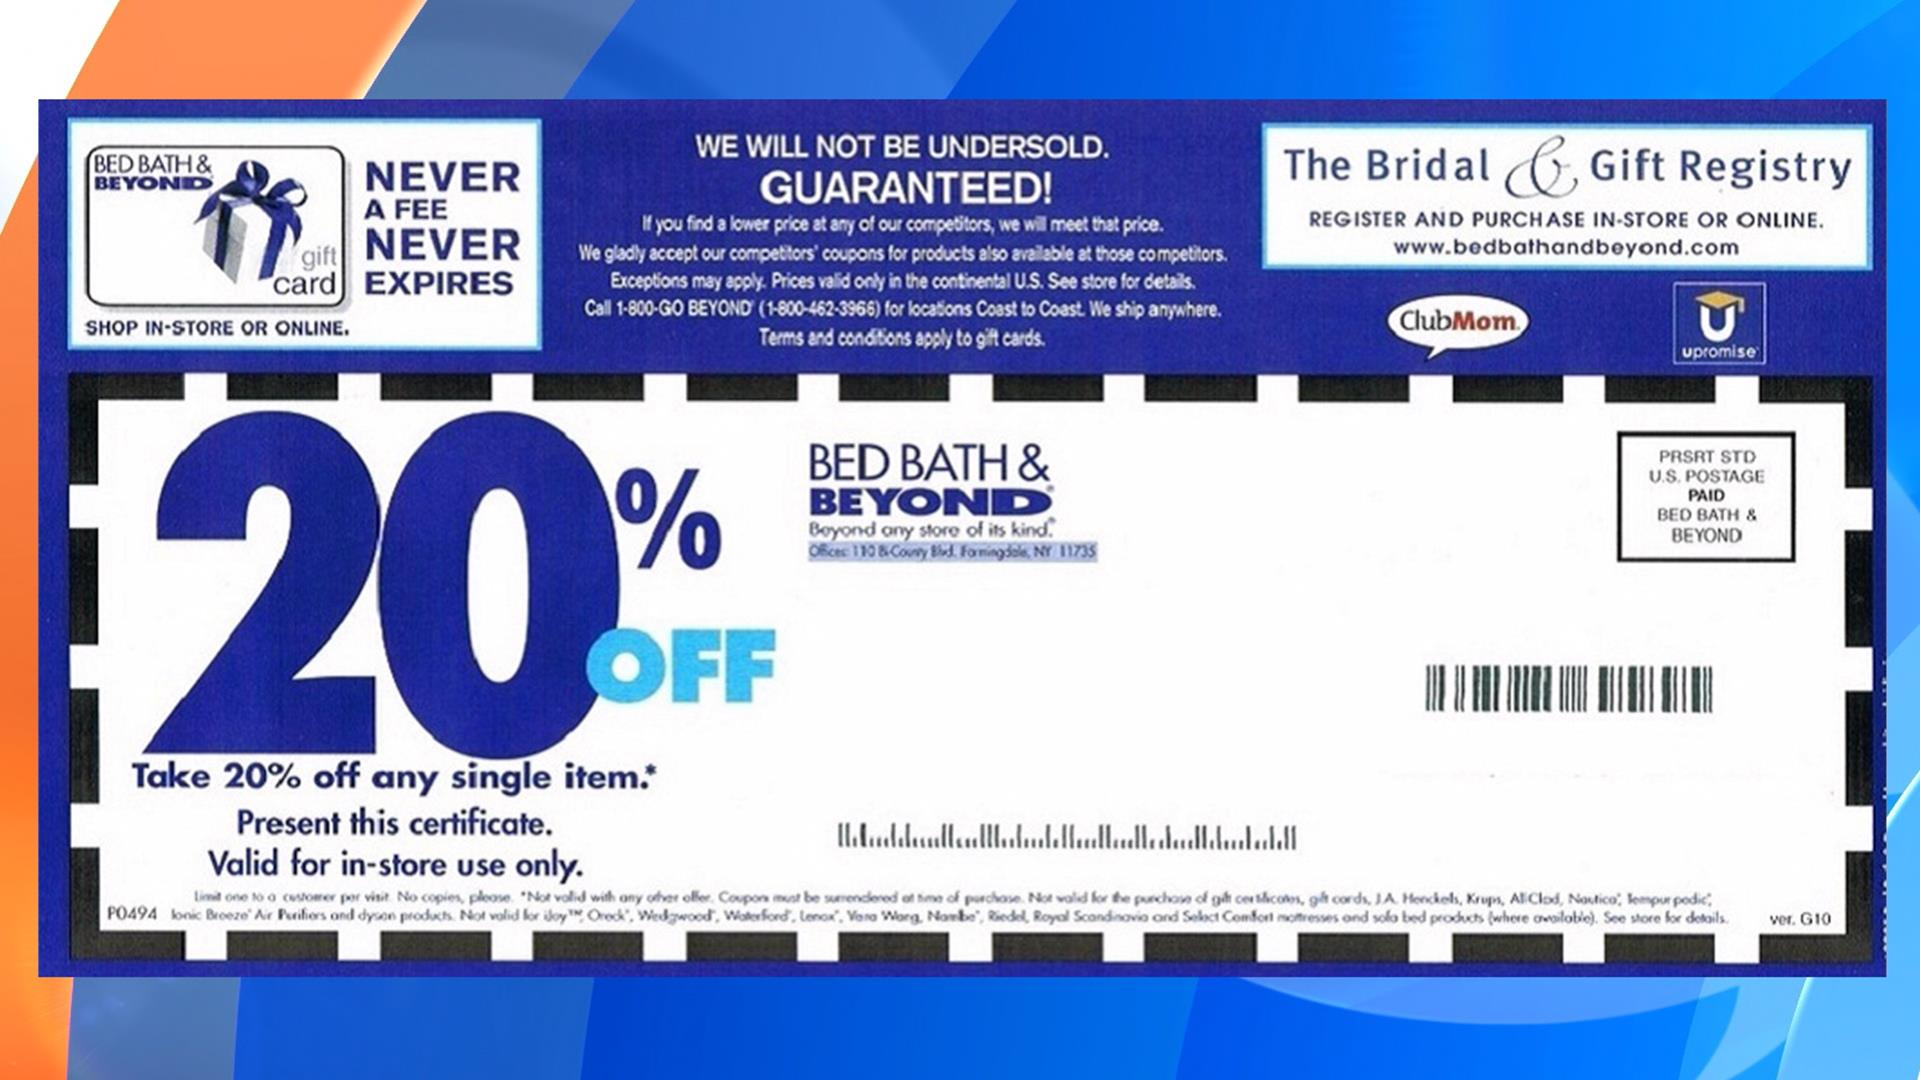 Bed bath beyond $5 coupon printable